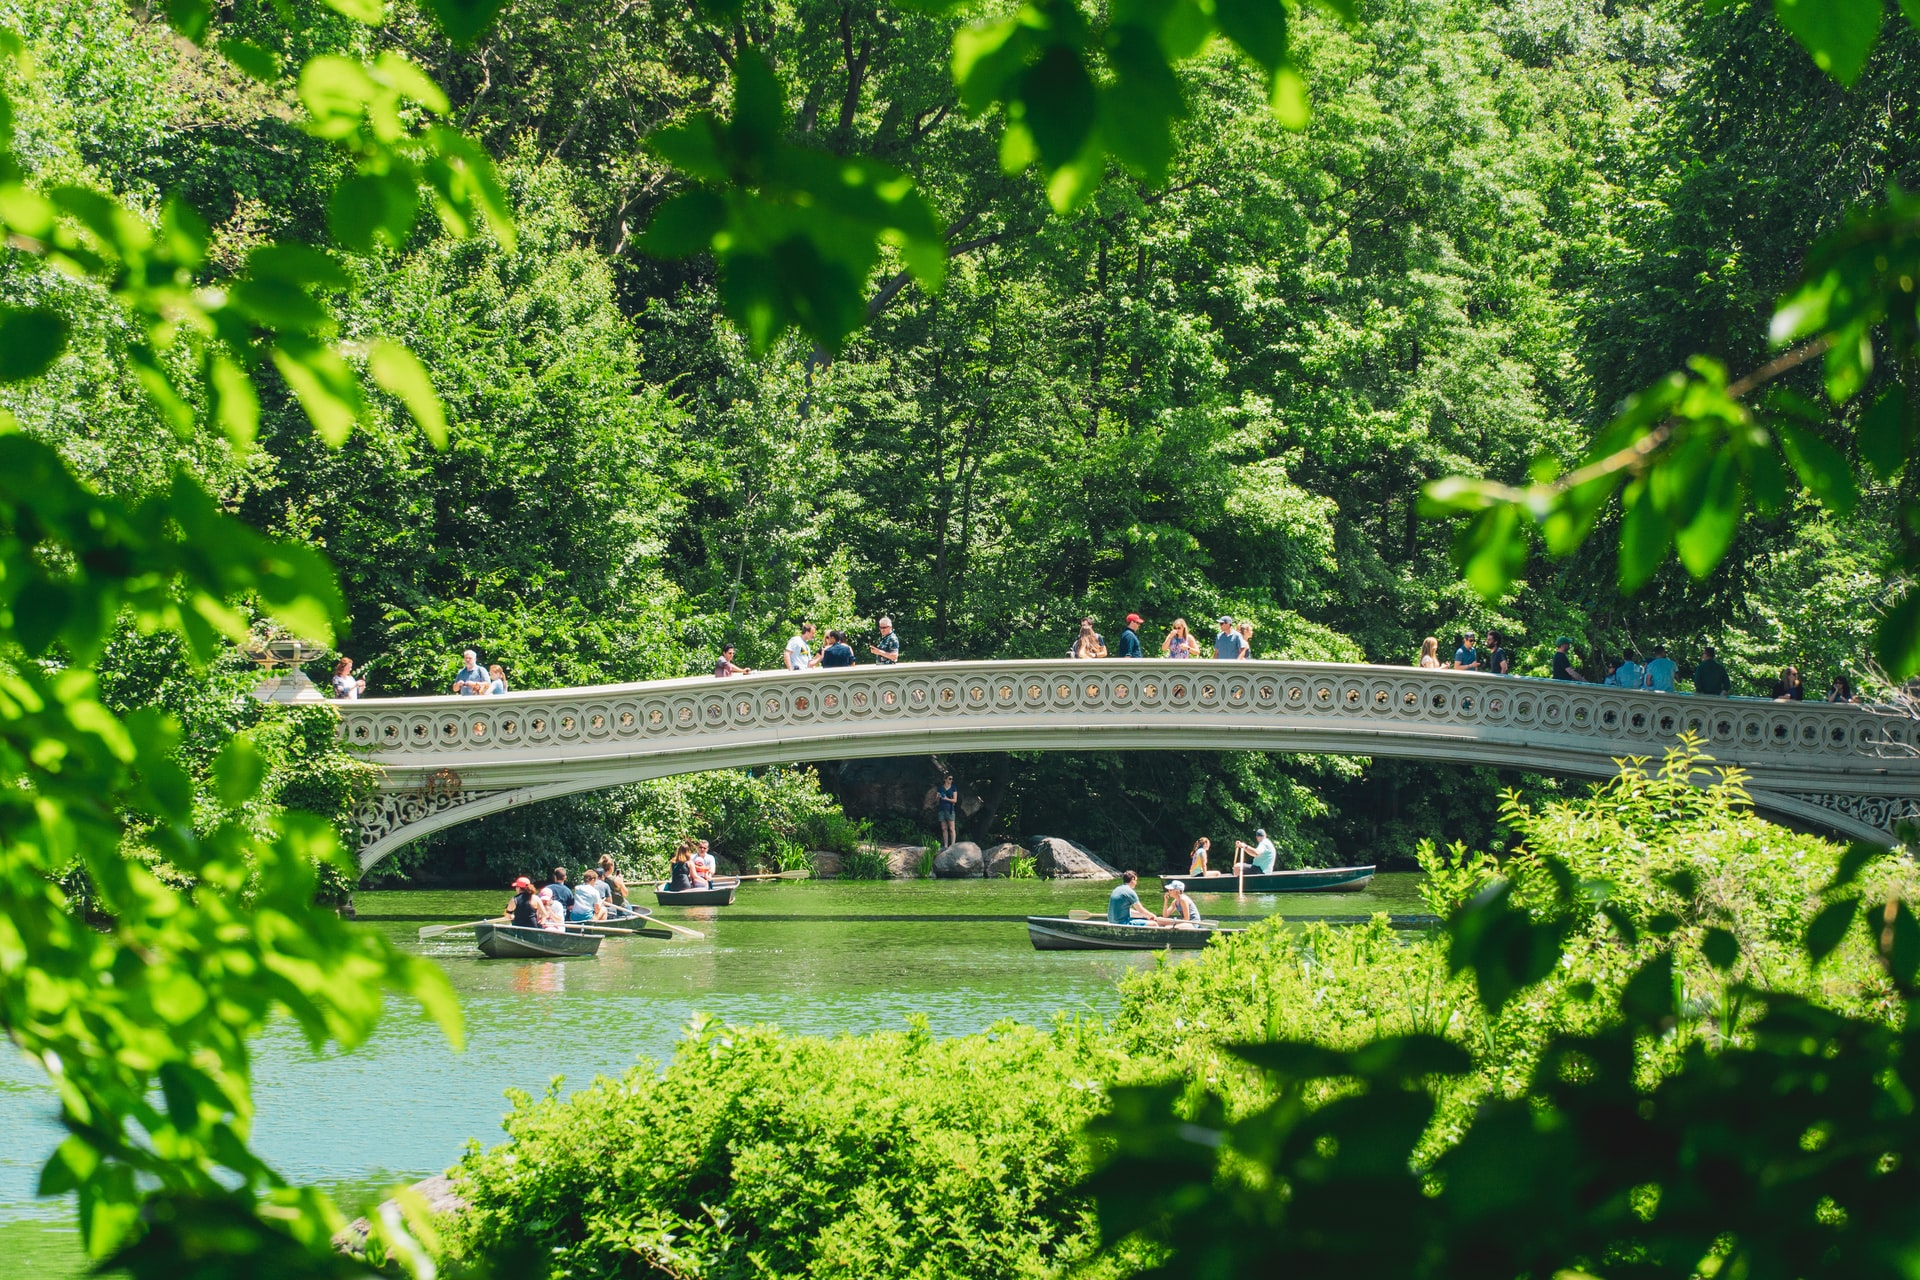 People rowing boats in the lake at Central Park